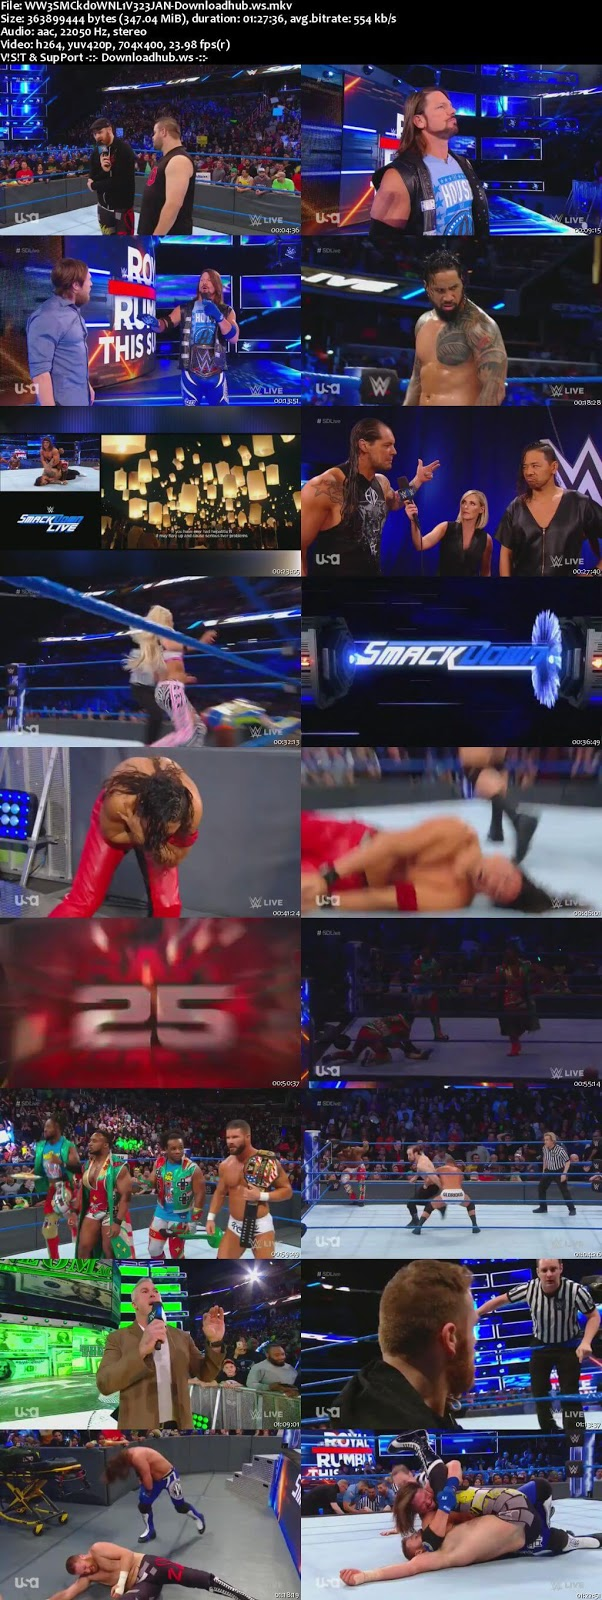 WWE Smackdown Live 23 January 2018 480p HDTV Download